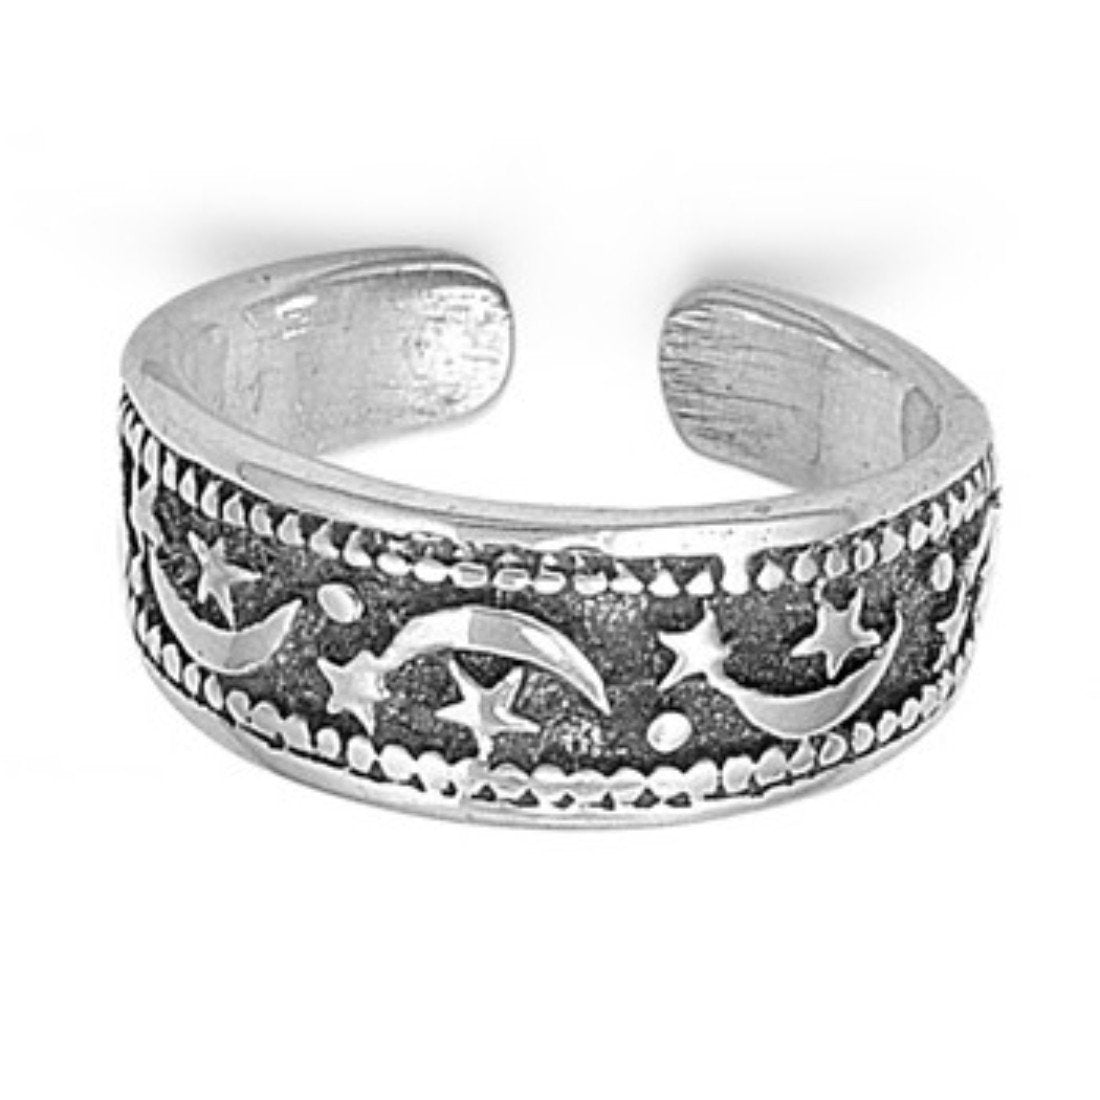 Moon & Star Adjustable Silver Toe Ring Band 925 Sterling Silver (6mm)